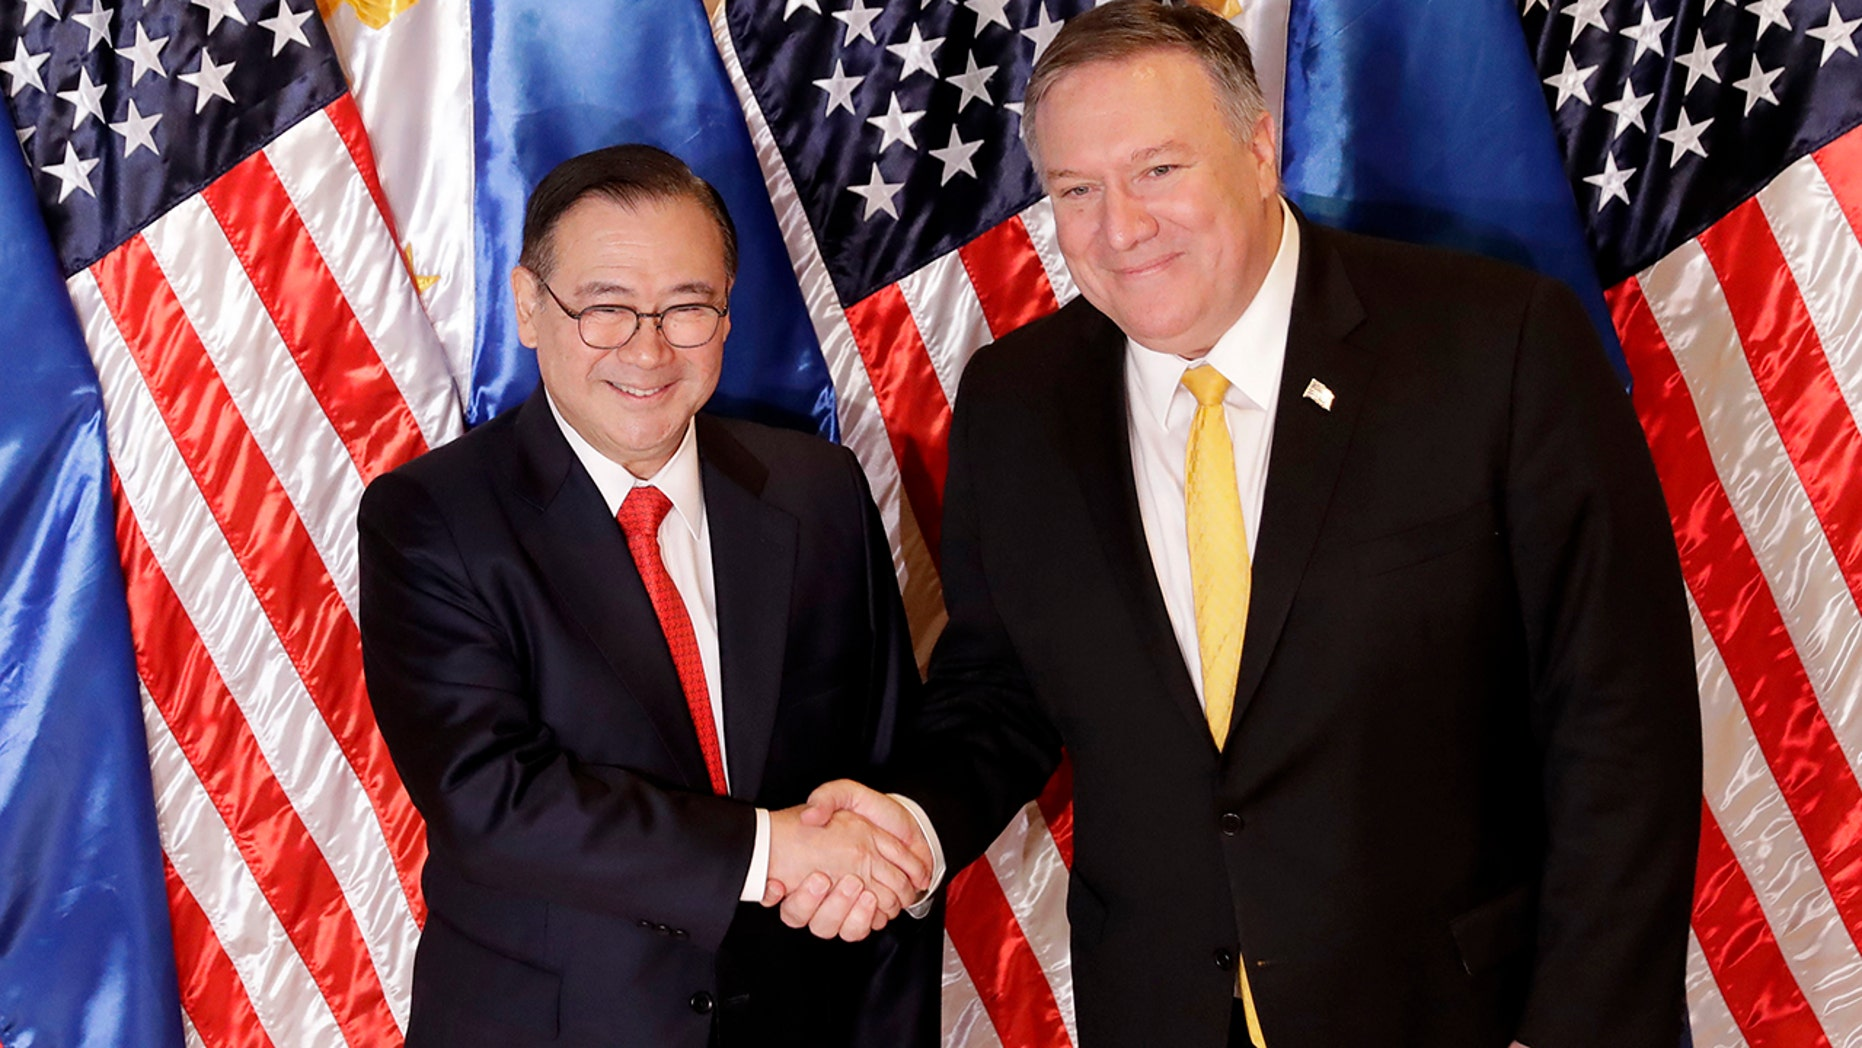 Philippine Foreign Affairs Secretary Teodoro Locsin Jr., left, and U.S. Secretary of State Mike Pompeo shake hands prior to their bilateral meeting in suburban Pasay city, southeast of Manila, Philippines Friday, March 1, 2019. (AP Photo/Bullit Marquez)